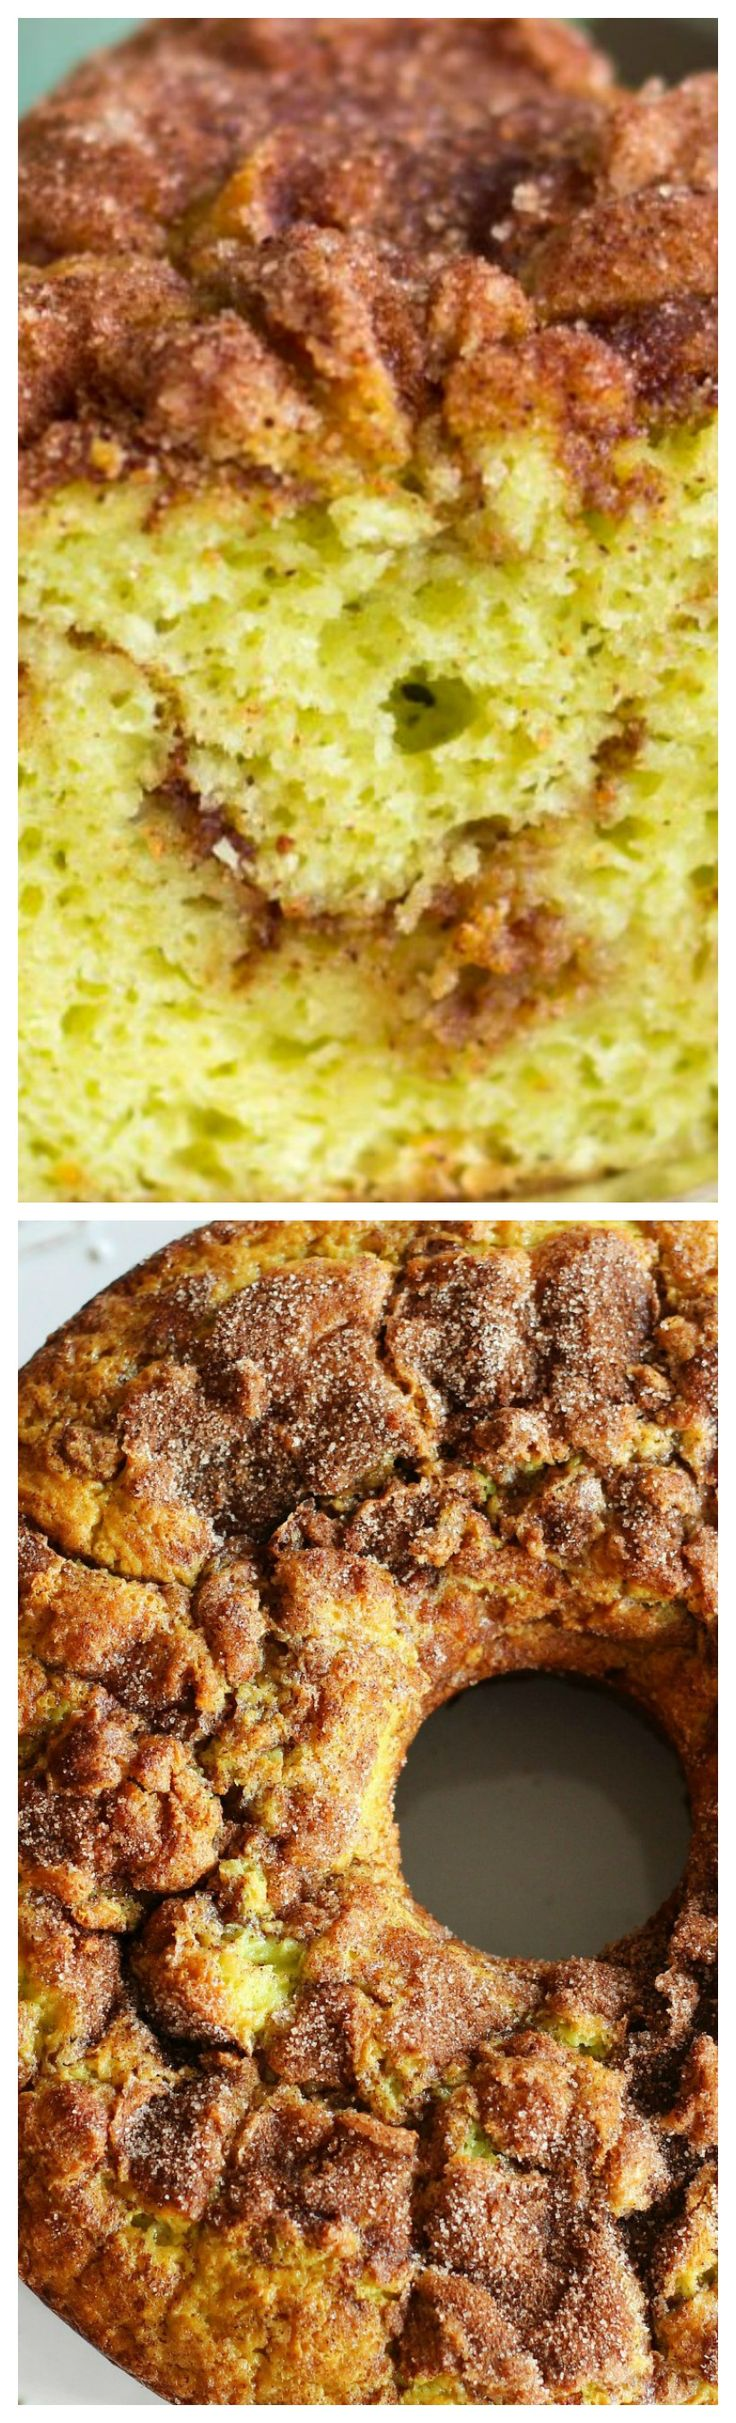 Grandma's Pistachio Bread ~ This super moist bread is made with one bowl, no mixer required, and is sooo easy... It's made with pistachio pudding mix, yellow cake mix, and ribbons of cinnamon-sugar for an ultra delicious bread or coffee cake!